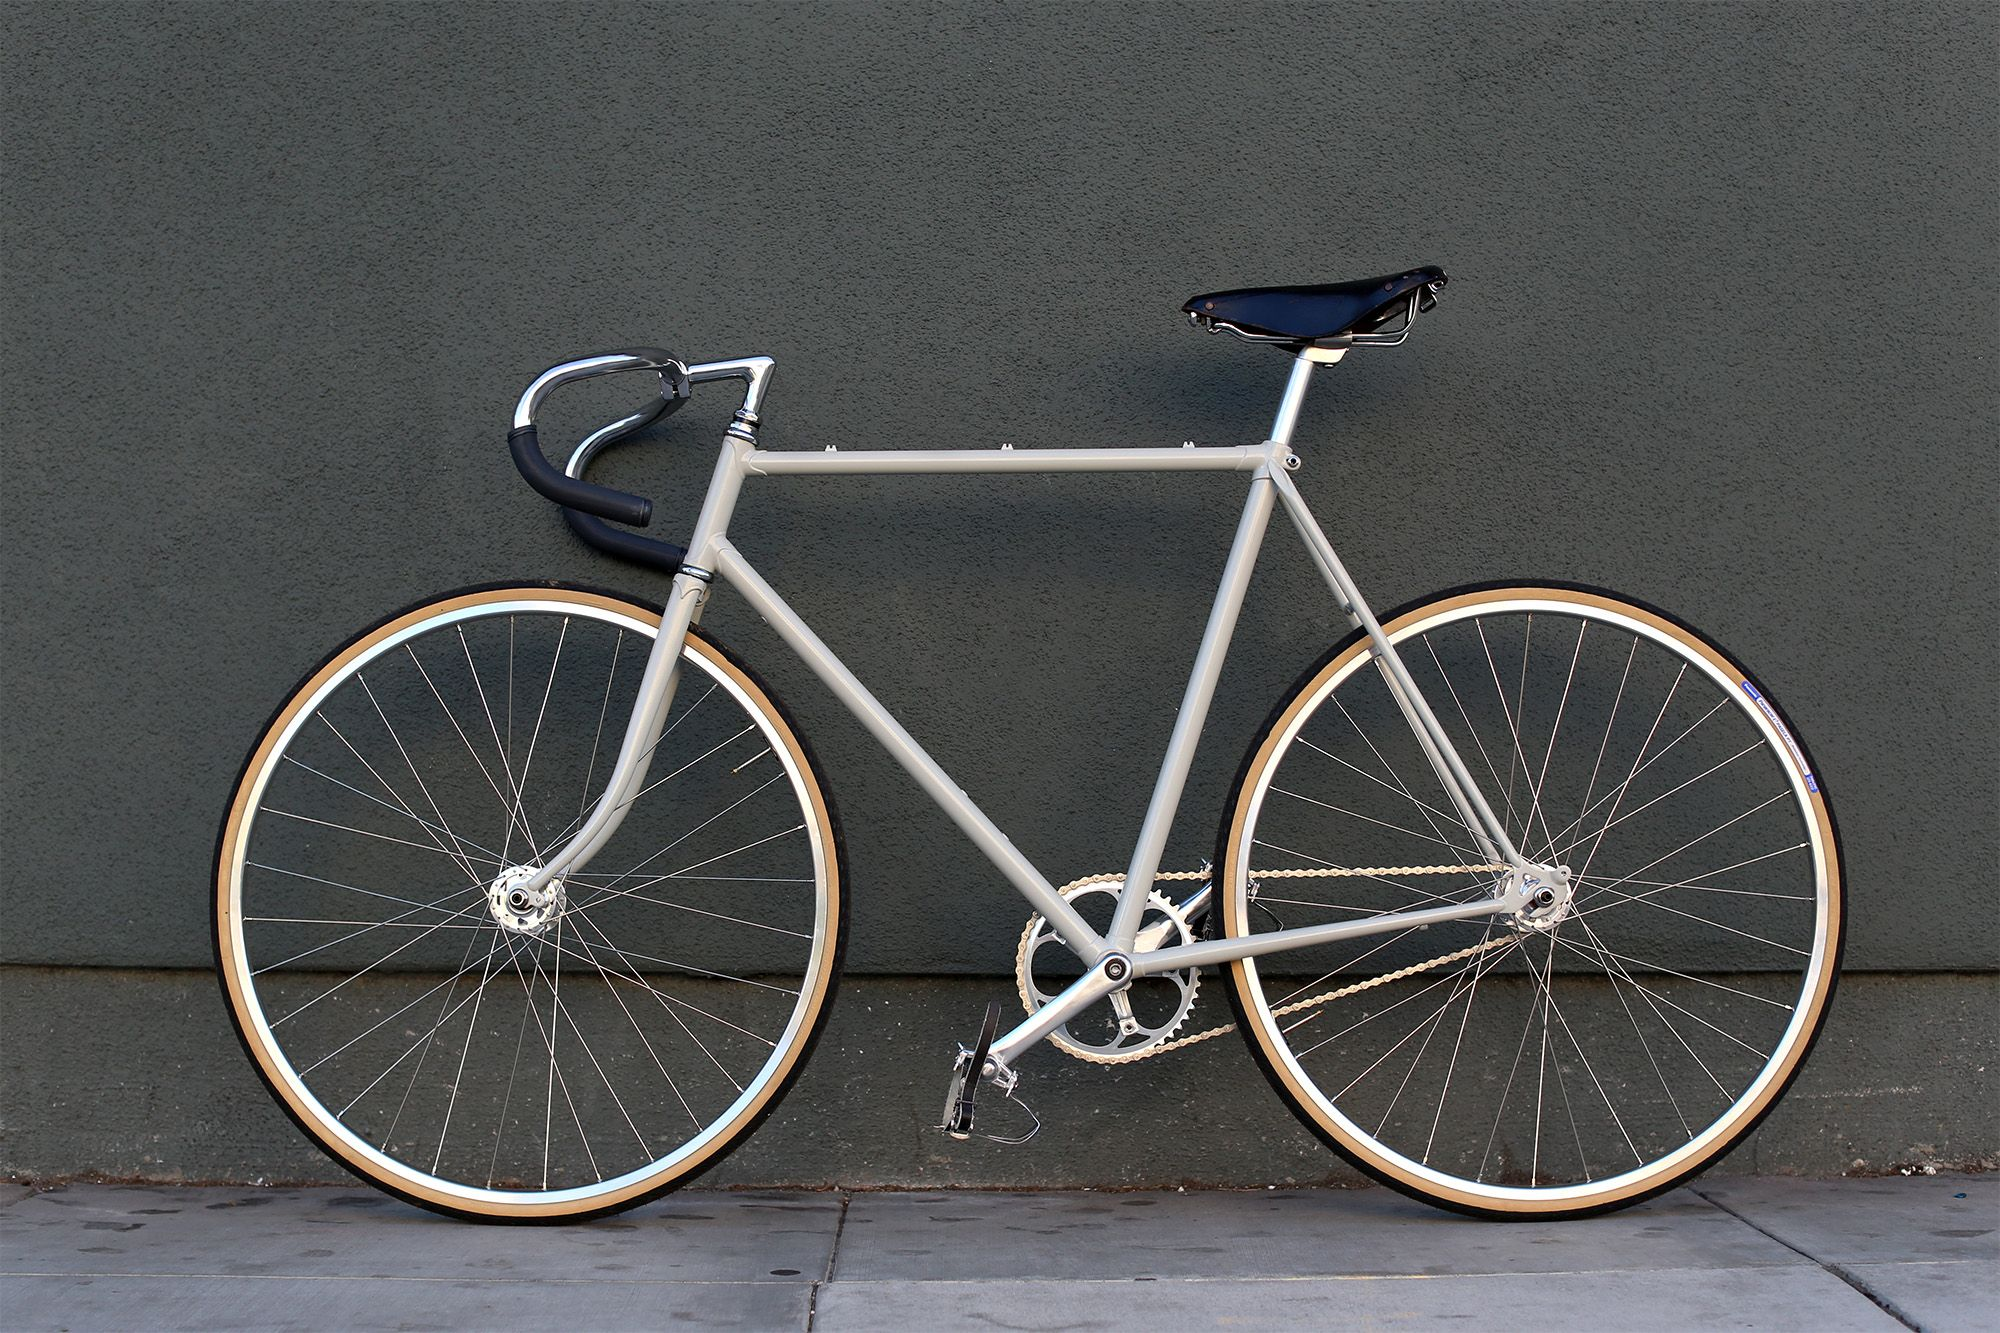 For Sale Inspired By Italian Track Bikes This Build Features A High Quality Lugged Vintage Japanese Road Frame Combined With Modern Track Compone Singlespeeder